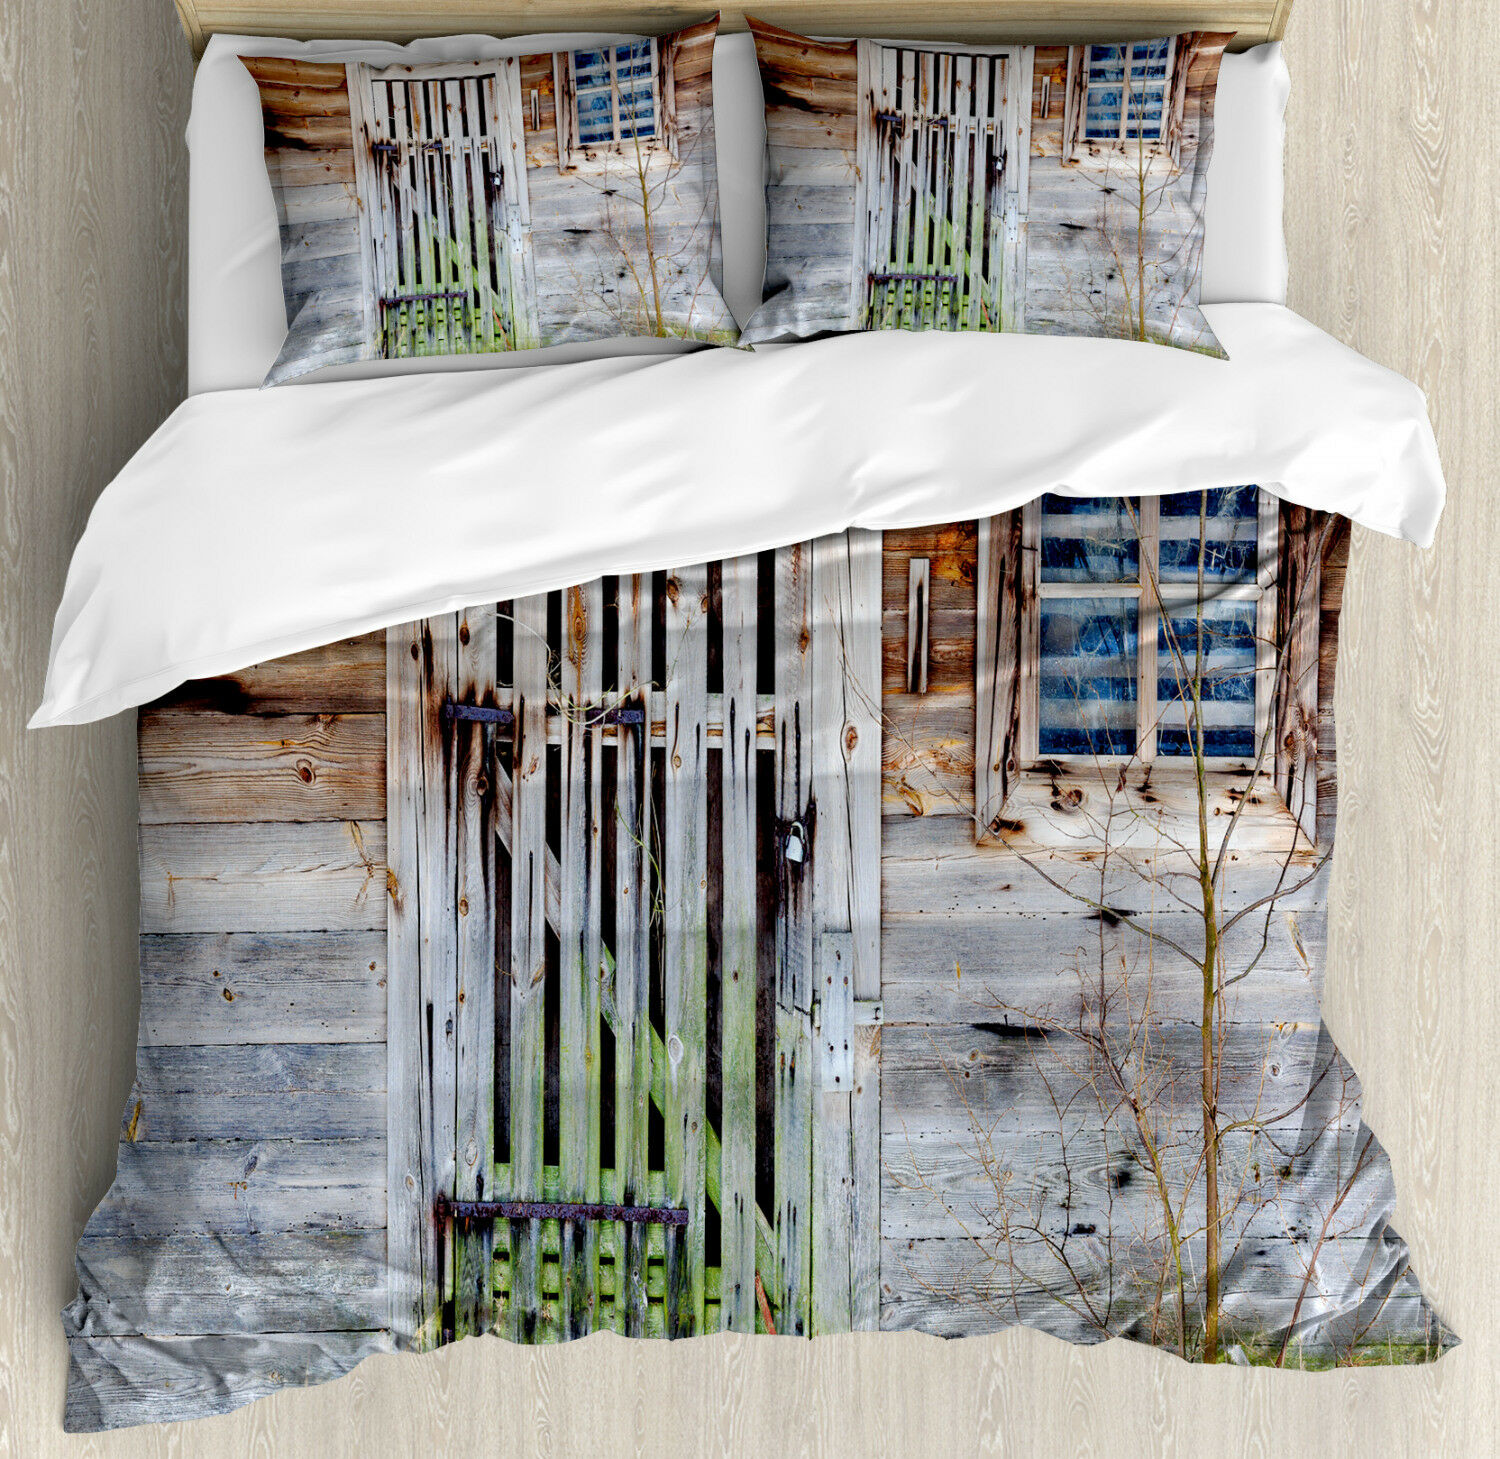 Primitive Country Duvet Cover Set with Pillow Shams Old Farmhouse Print